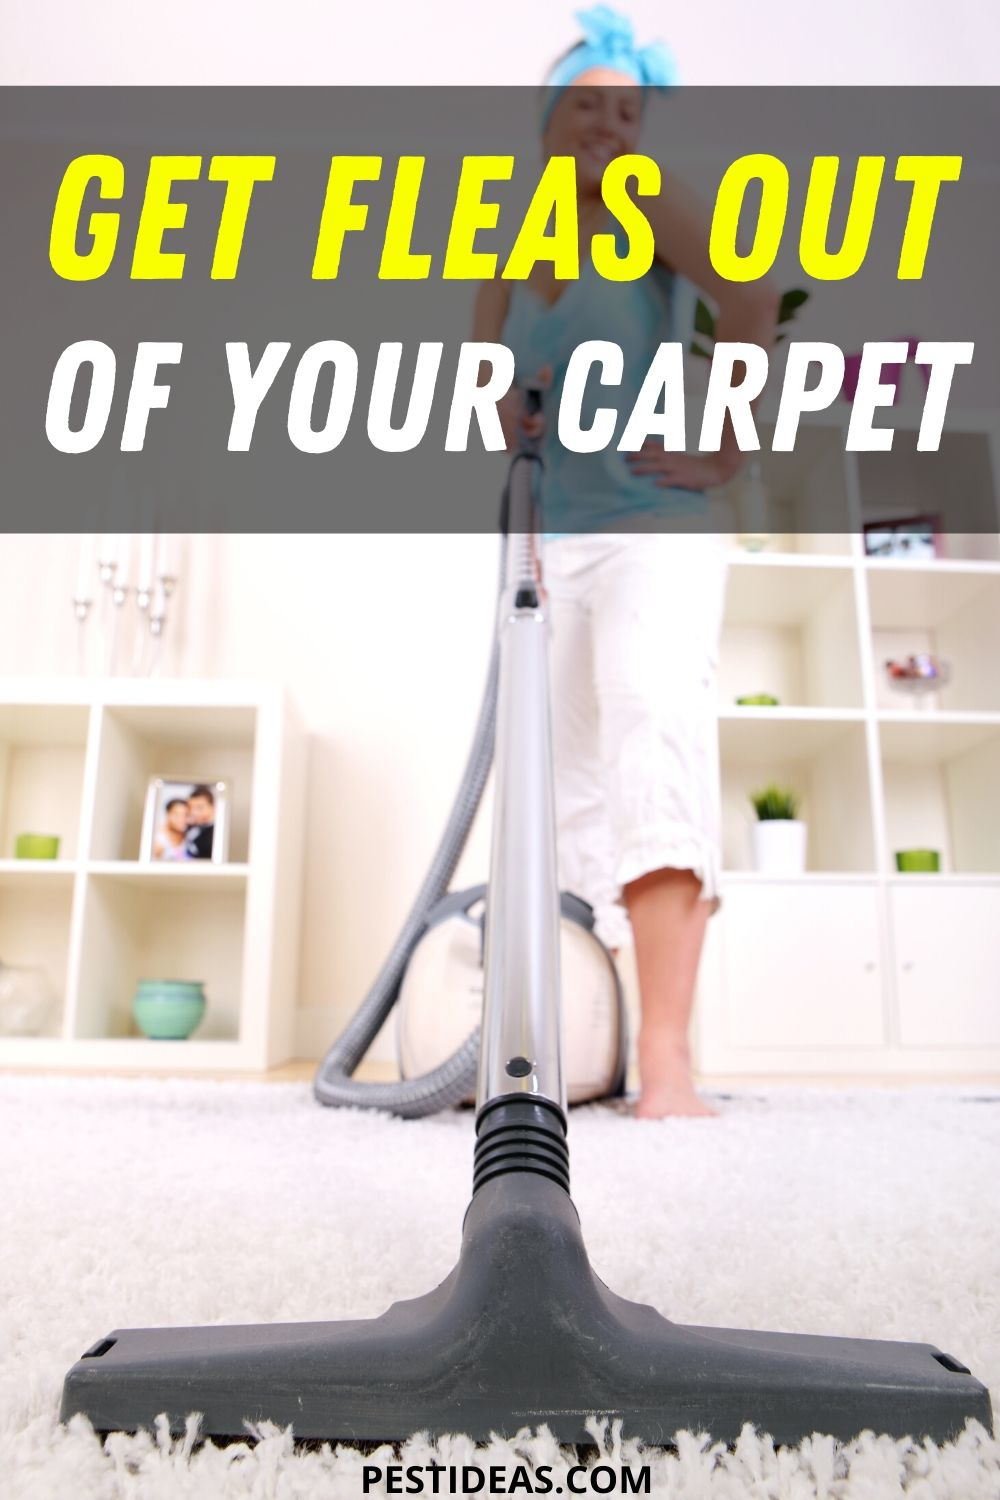 Get Fleas Out of Your Carpet